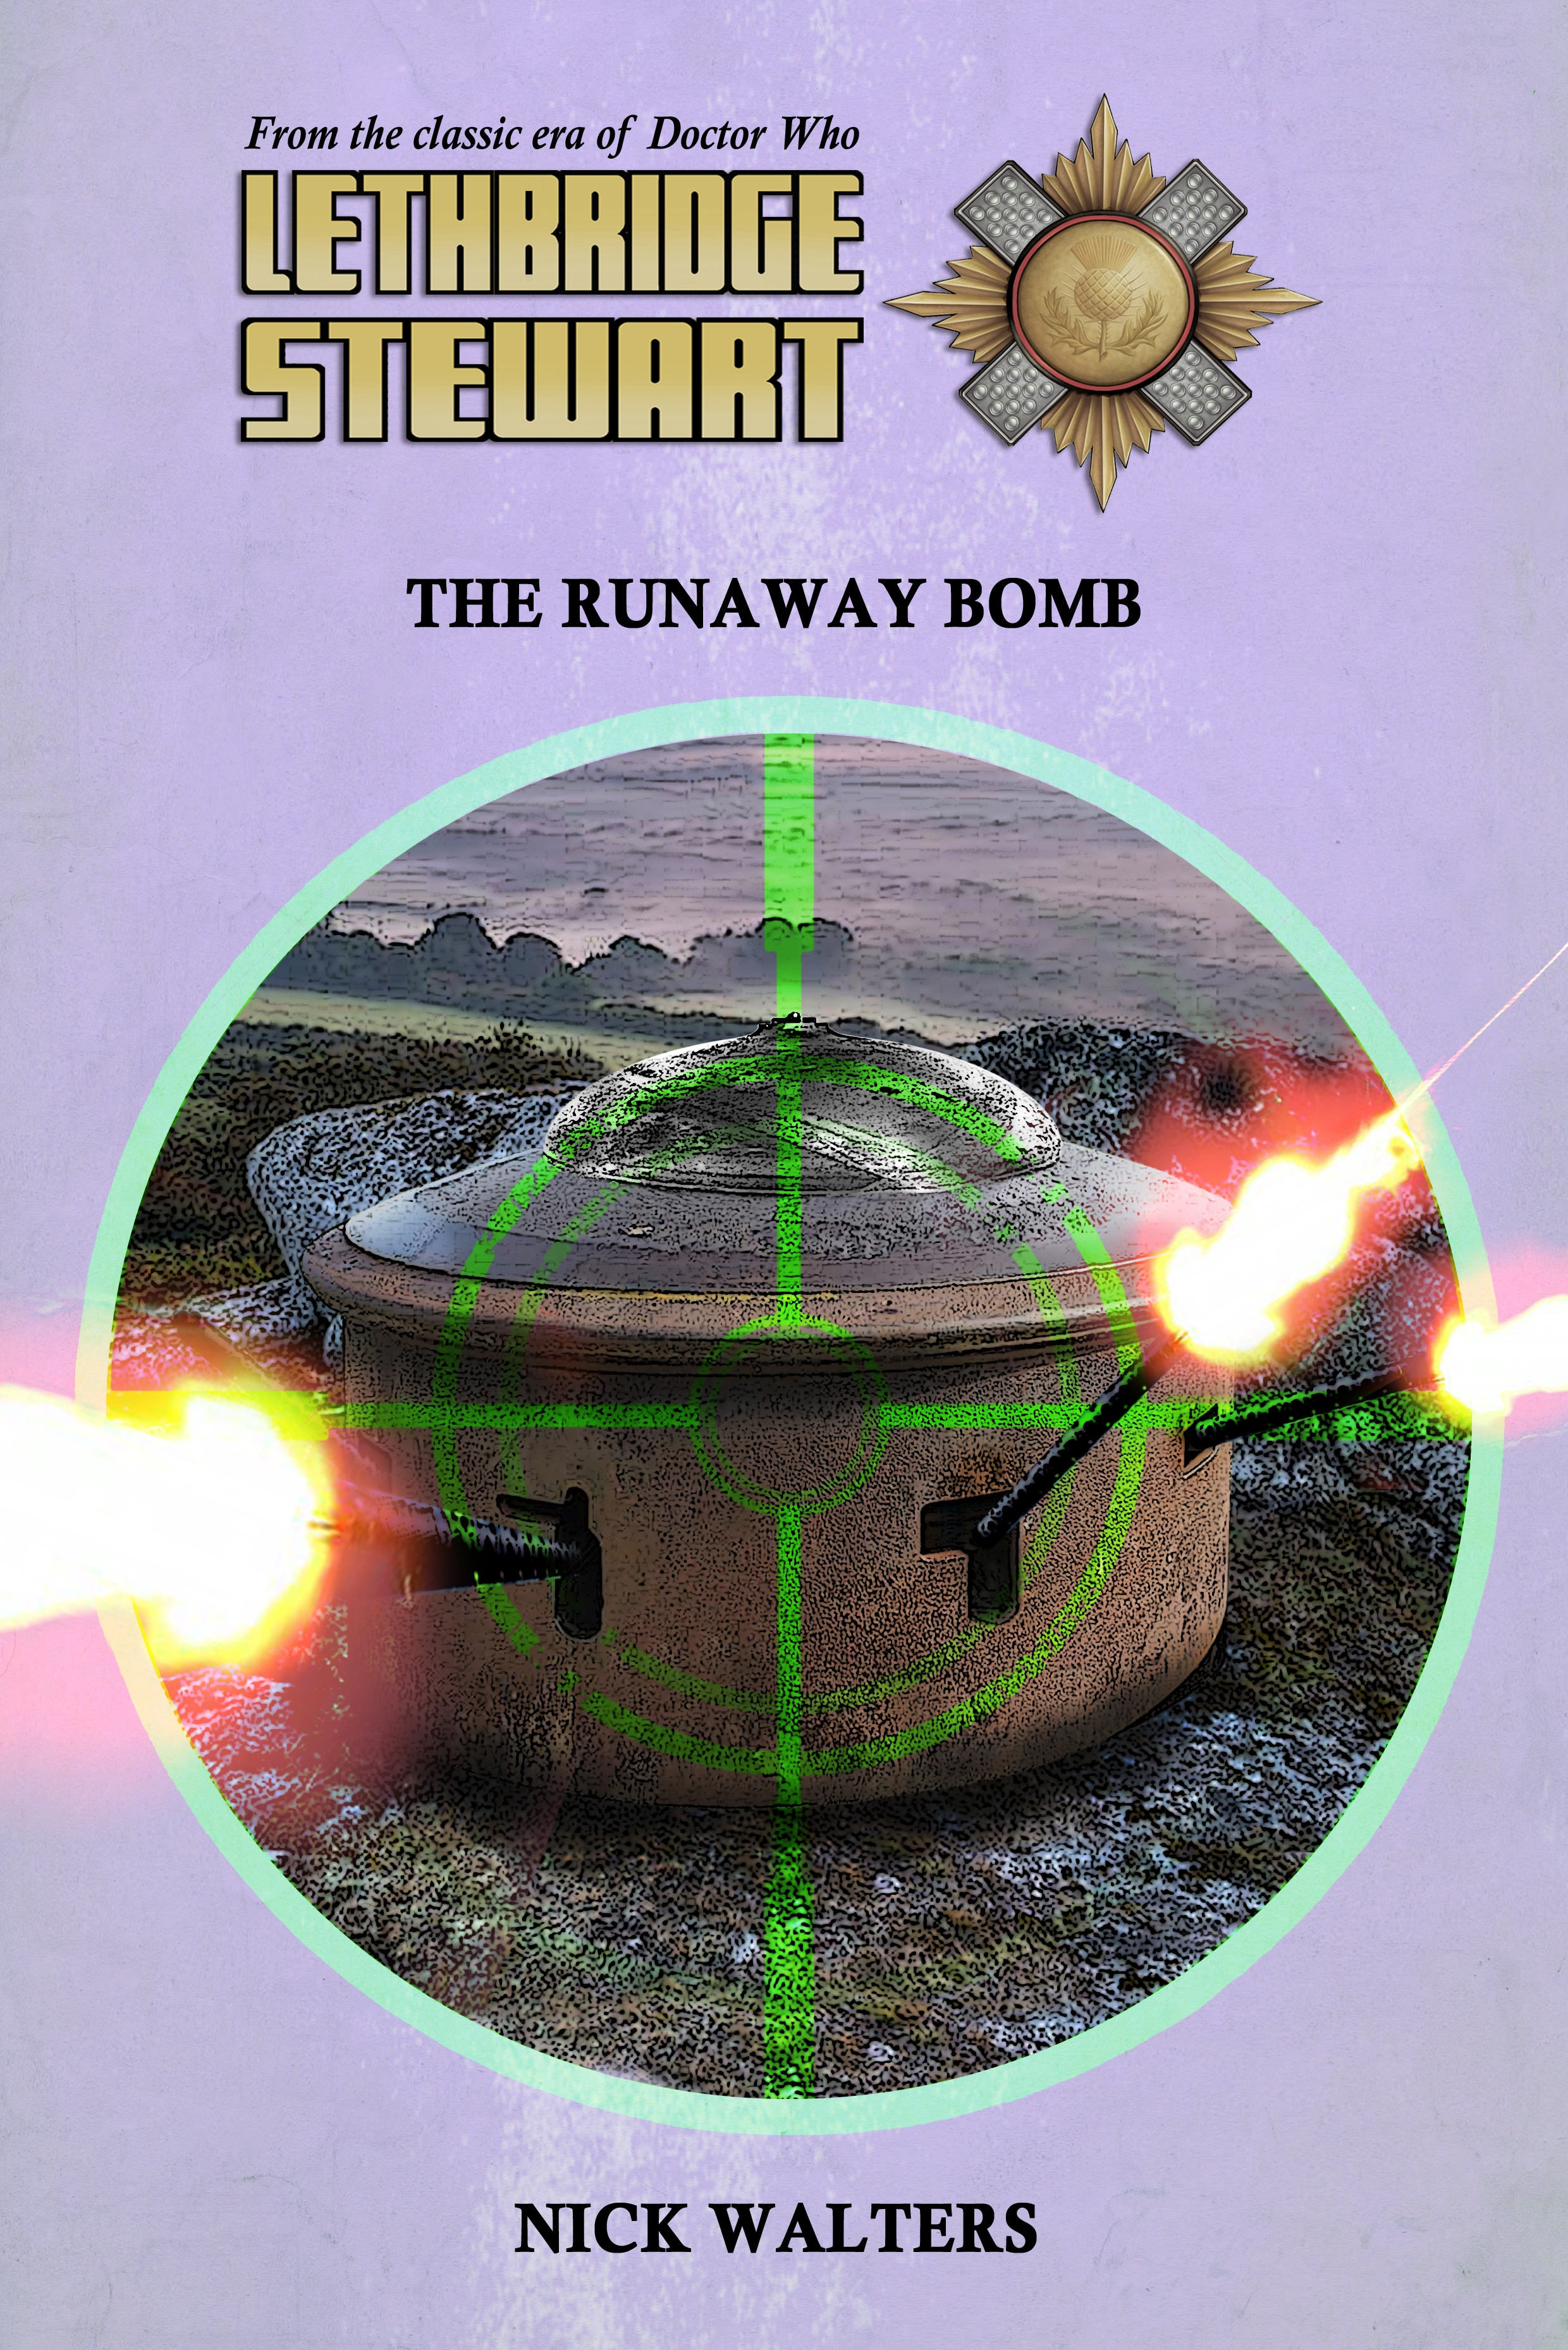 Lethbridge-Stewart: The Runaway Bomb (Credit: Candy Jar Books)